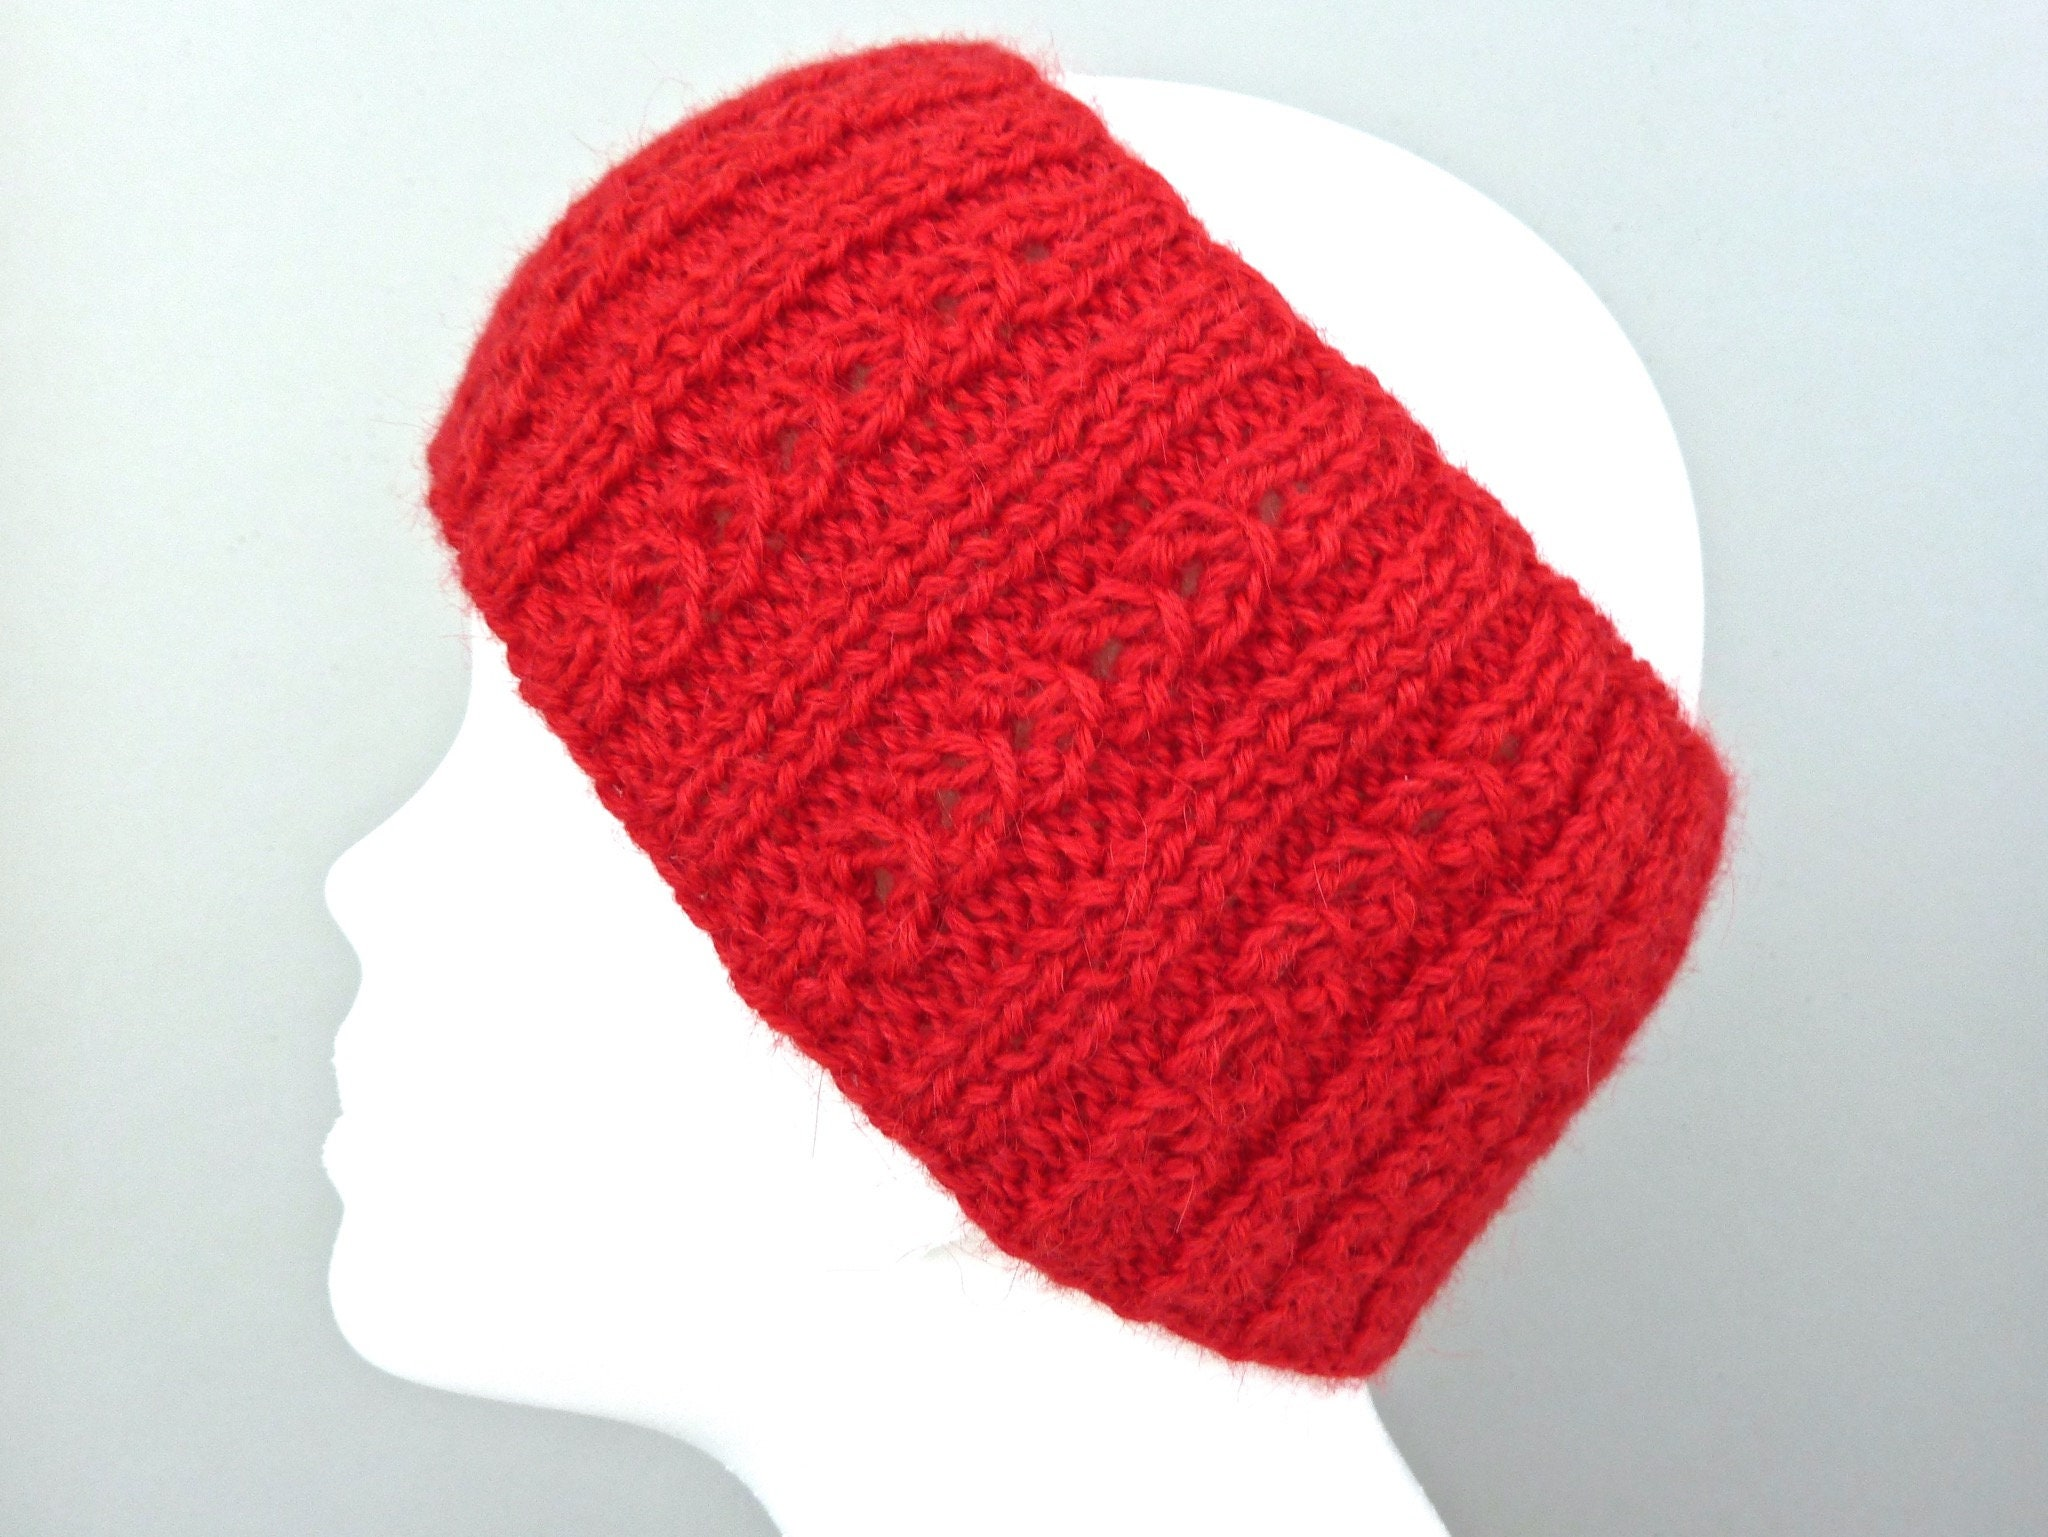 66512dc6e2d9 Hand knit red alpaca wide headband with cable pattern. Size